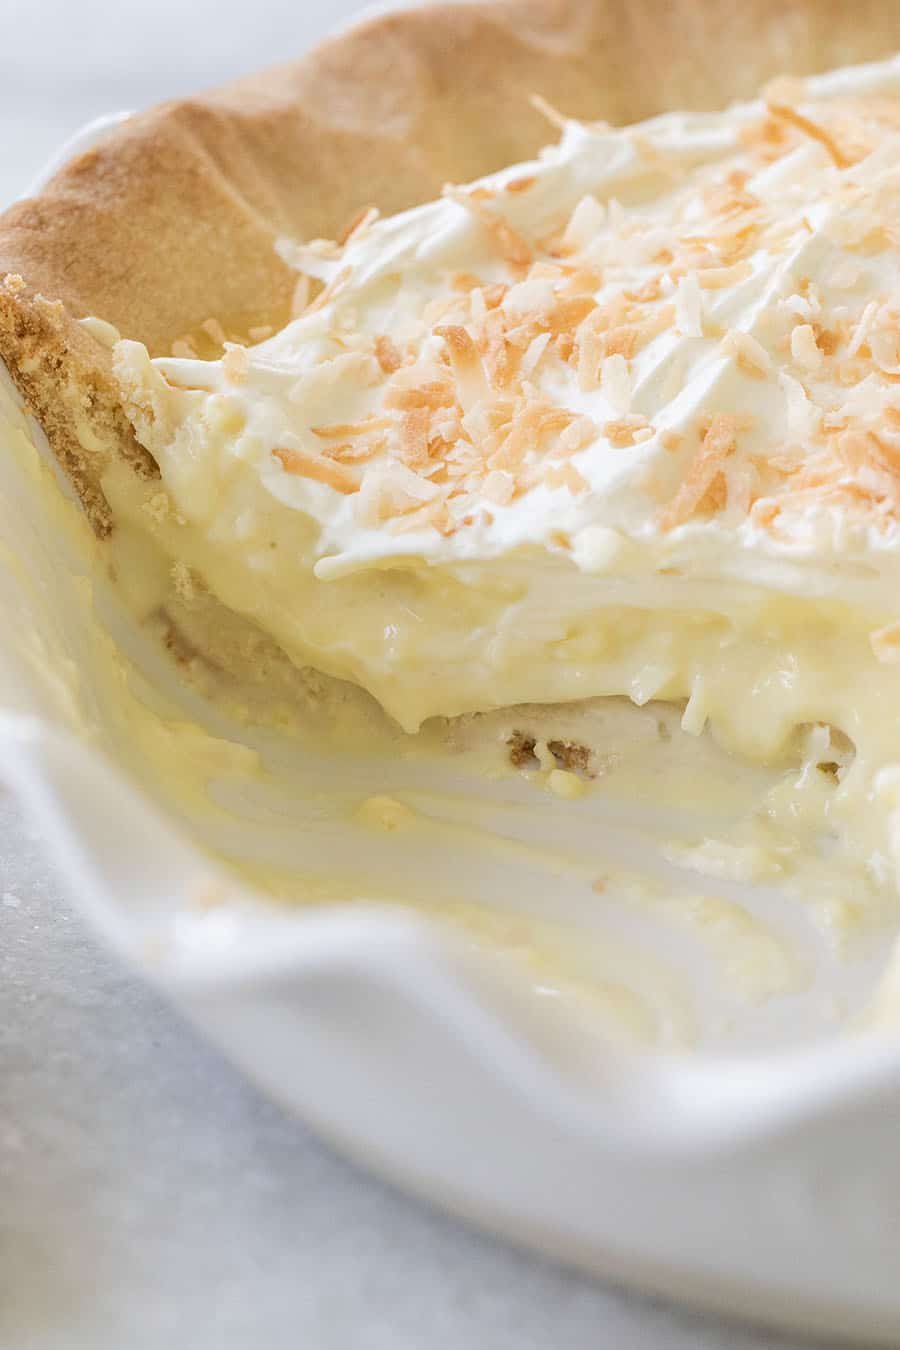 A slice of coconut cream pie removed from a pie dish